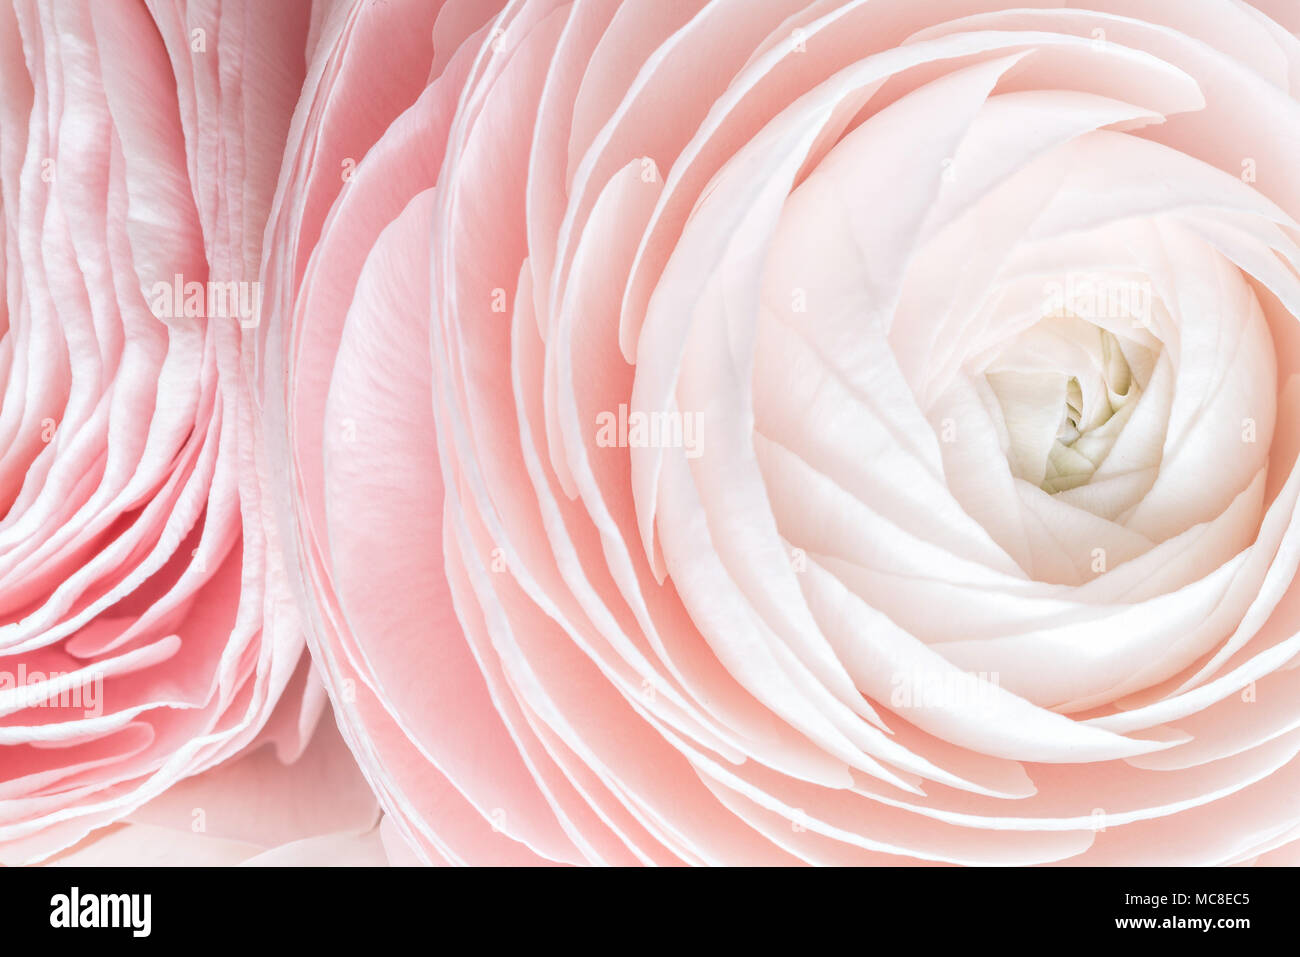 many layered petals persian buttercup bunch pale pink ranunculus